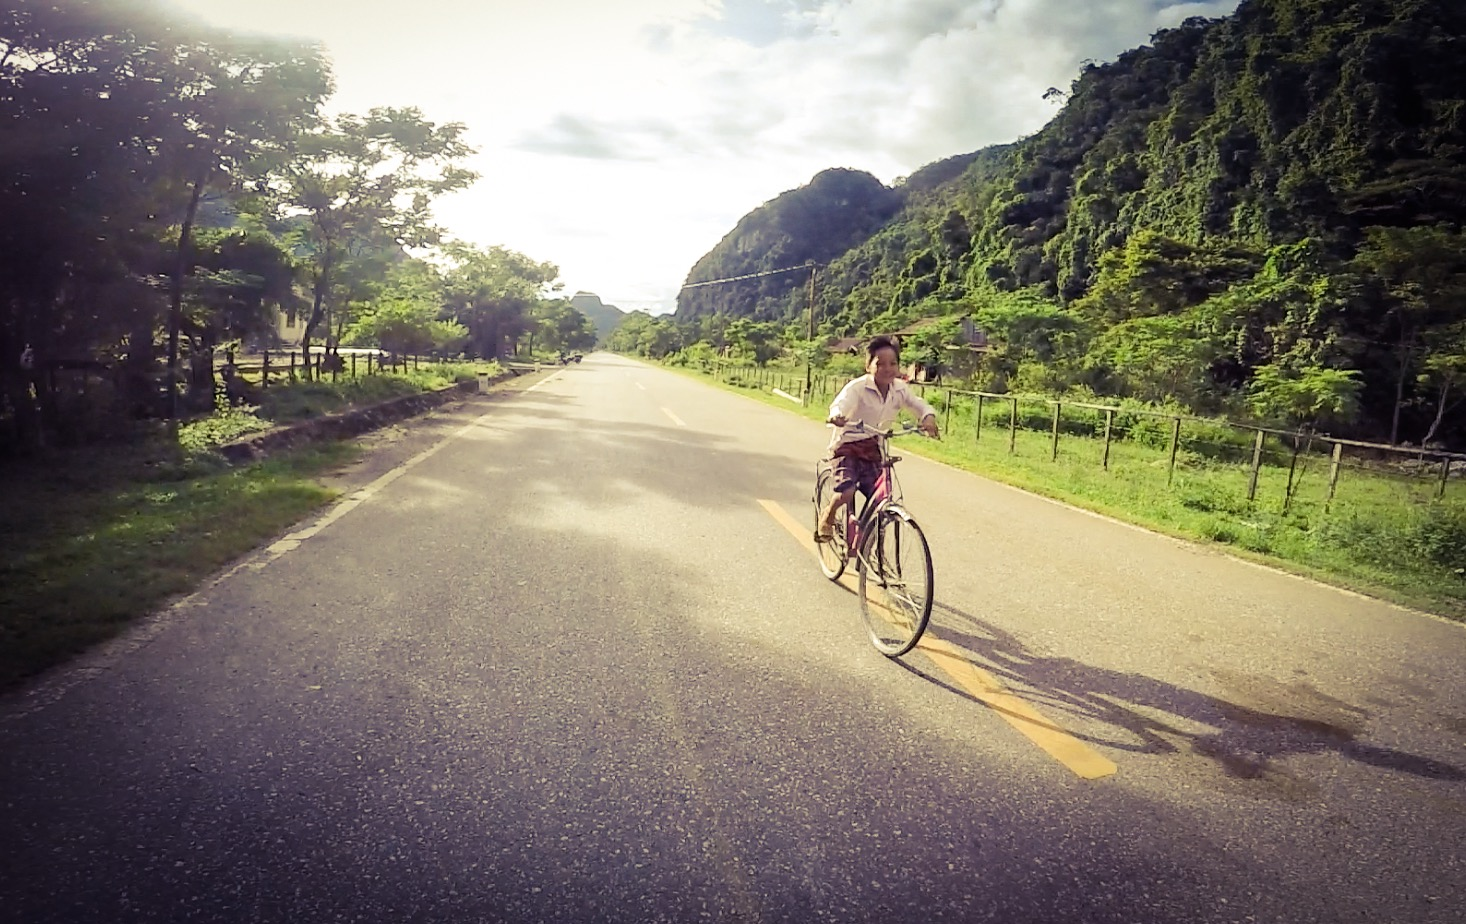 My friend with a big smile who rode with me for a while, I wished I could speak Vietnamese